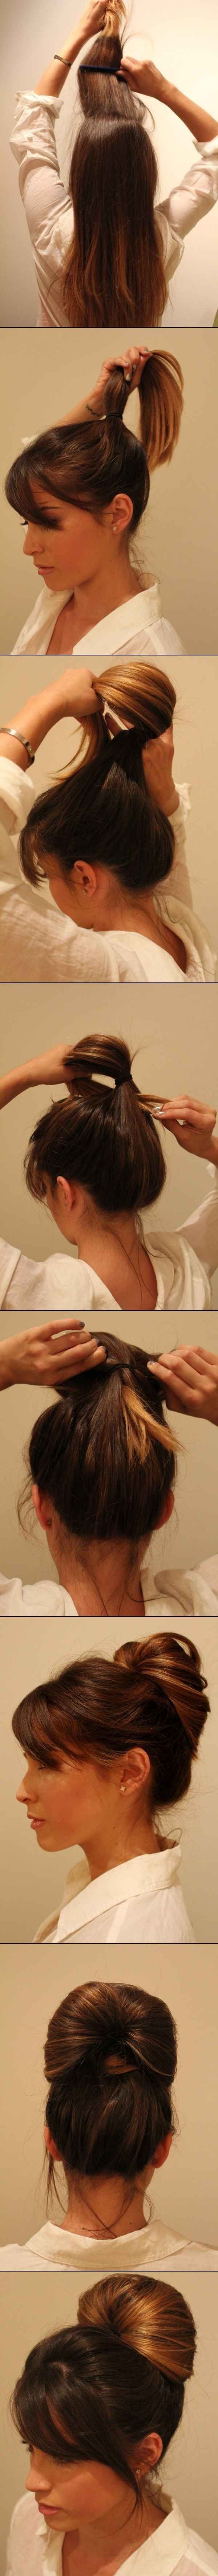 best lazy hair images on pinterest coiffure facile diy